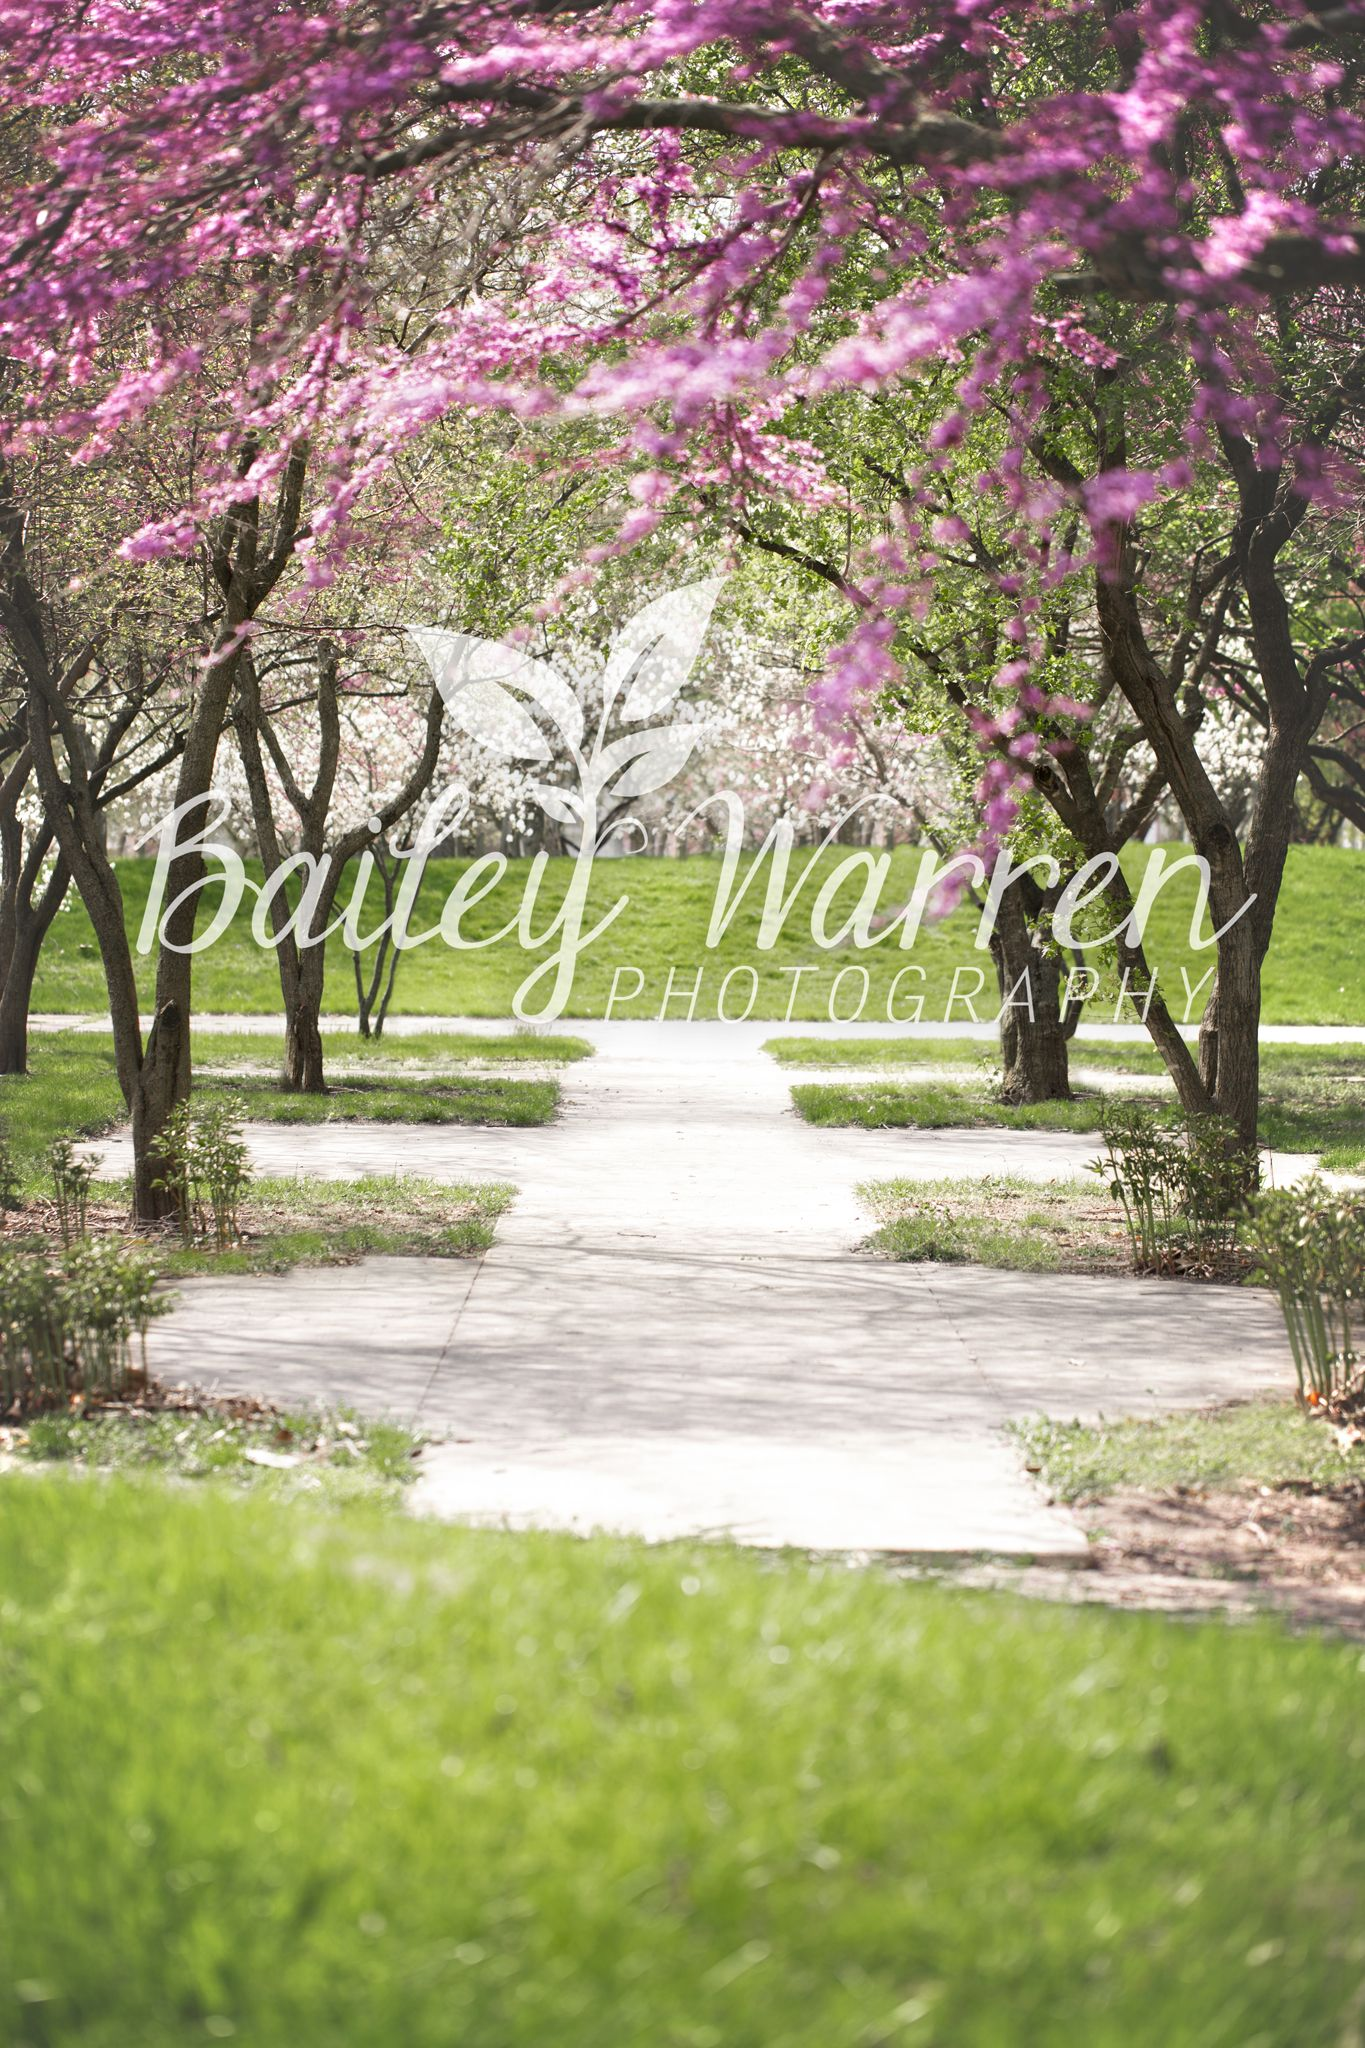 Photography Prop Digital Backdrop for Photographers - Spring Flowering Trees Digital Backdrop #backdropsforphotographs